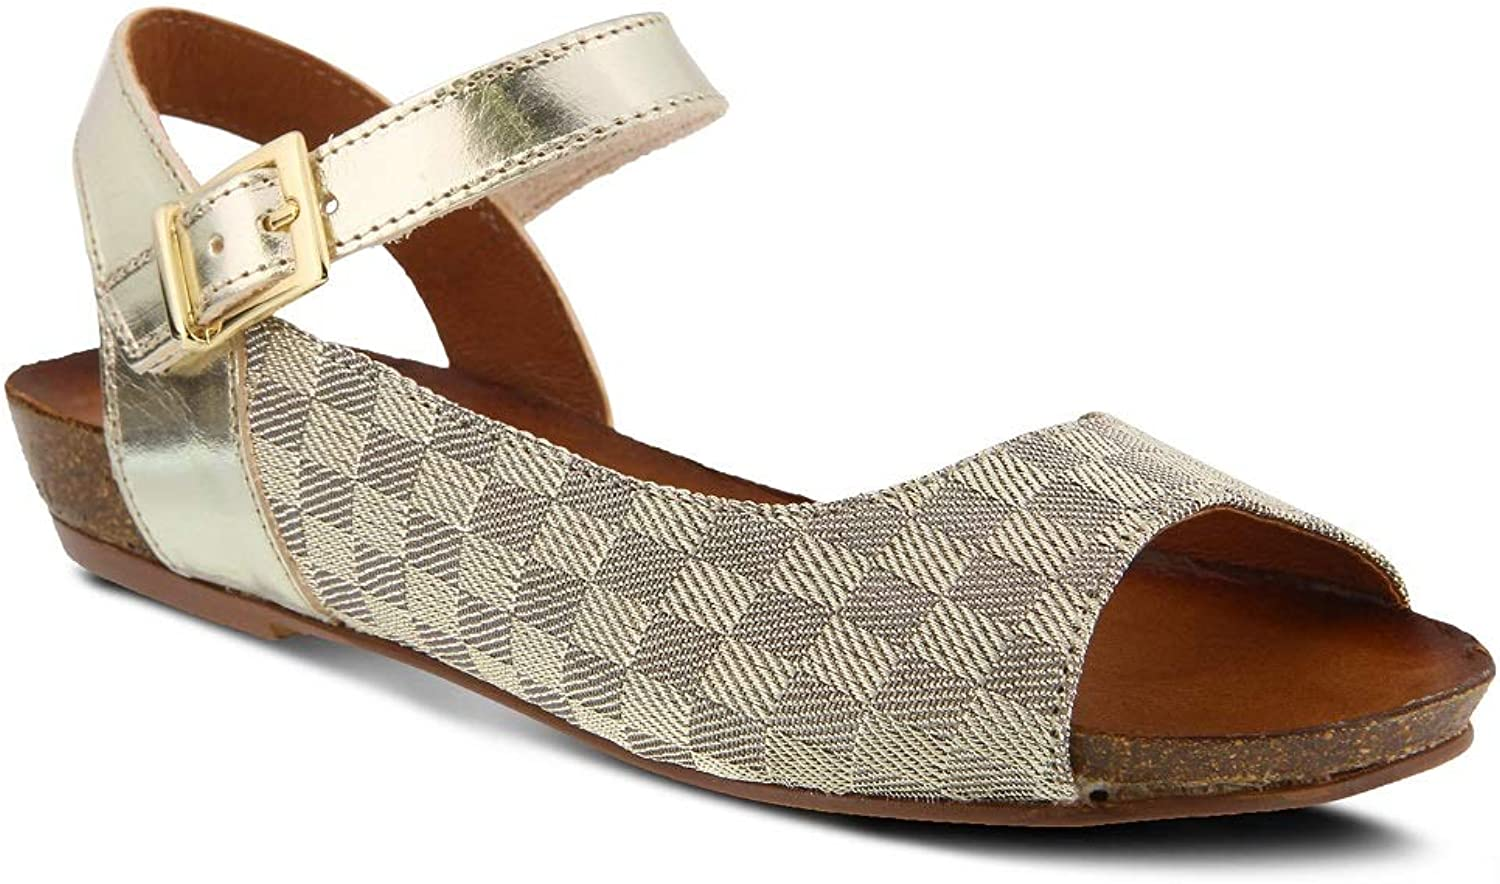 Spring Step Women's Asimona Sandals   color gold   Leather Sandals